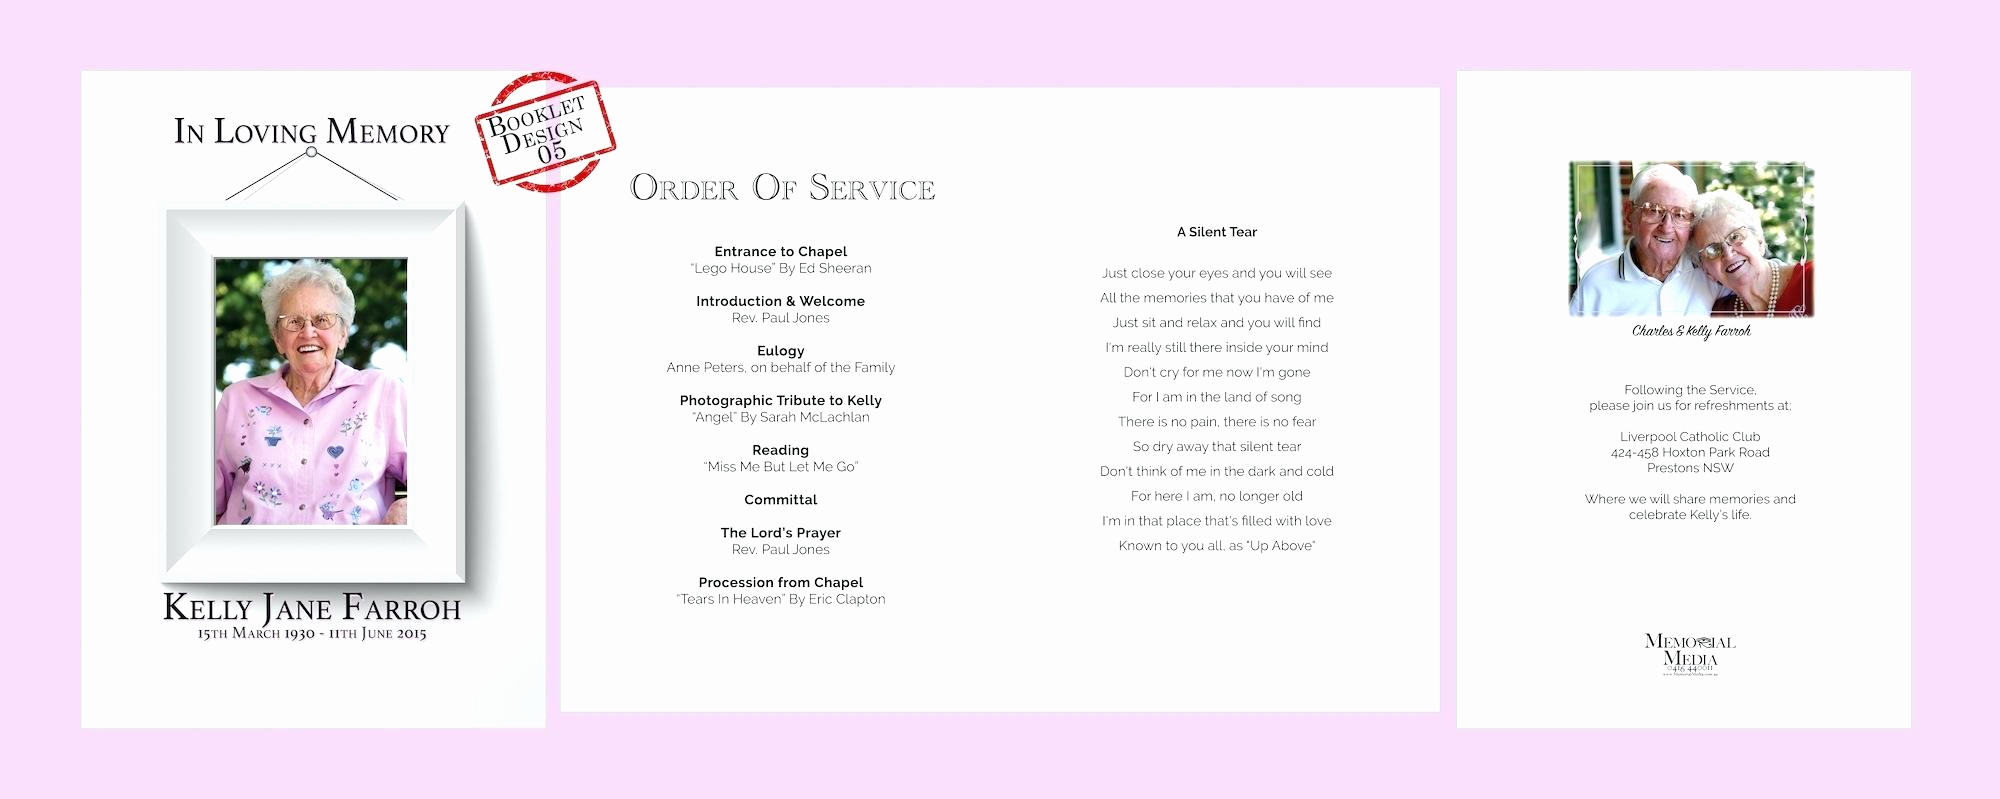 Order Of Service for Funeral Lovely order Service Funeral Template Free Download Letter